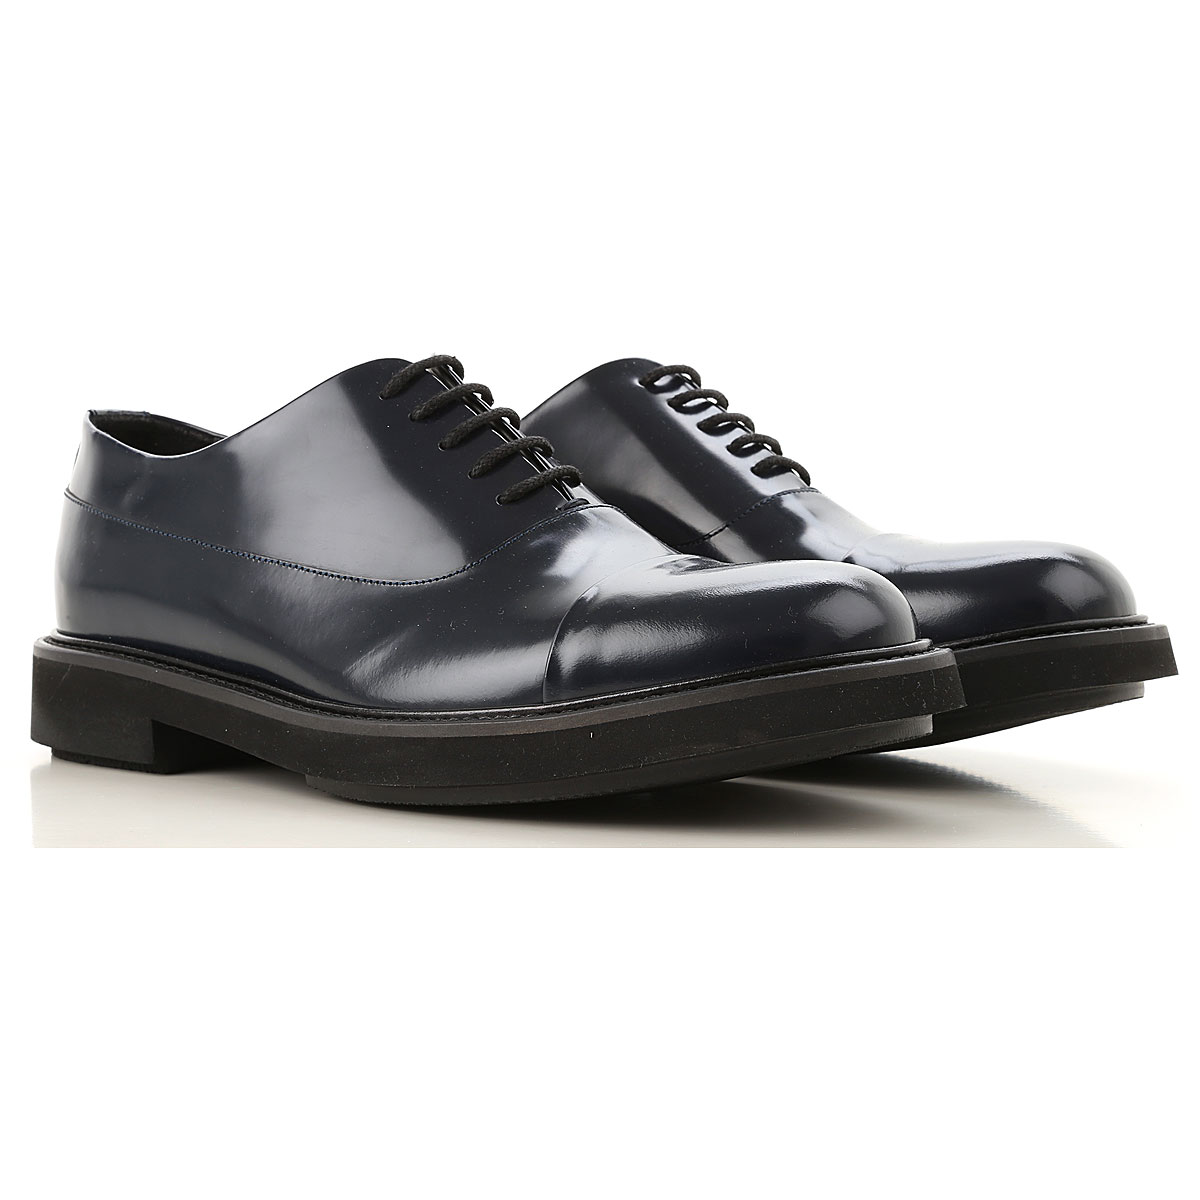 Emporio Armani Lace Up Shoes for Men Oxfords Derbies and Brogues On Sale USA - GOOFASH